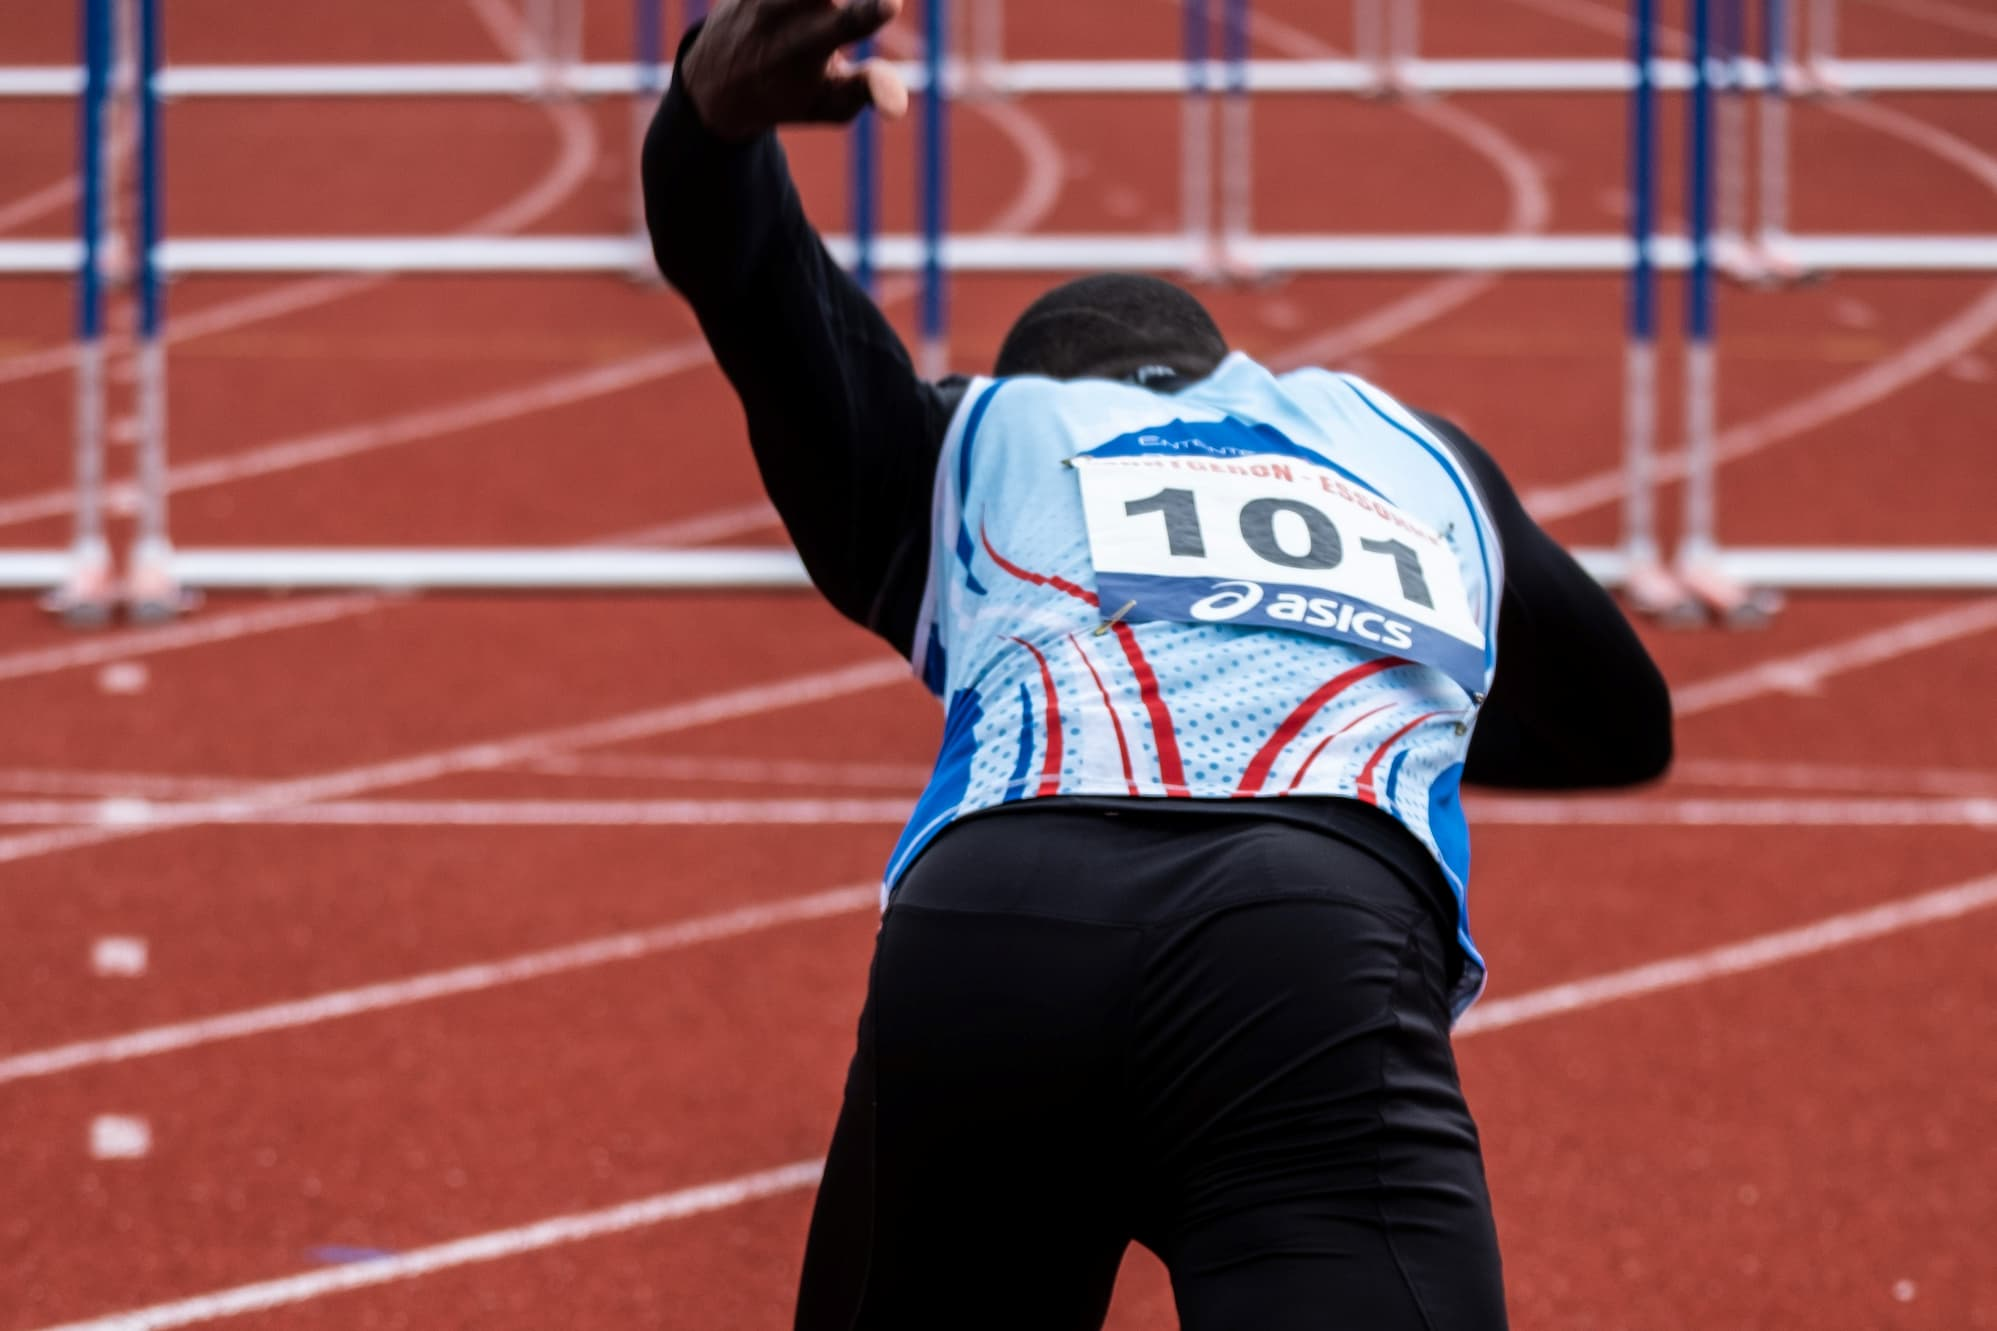 6 freelance lessons learned from Olympic athletes